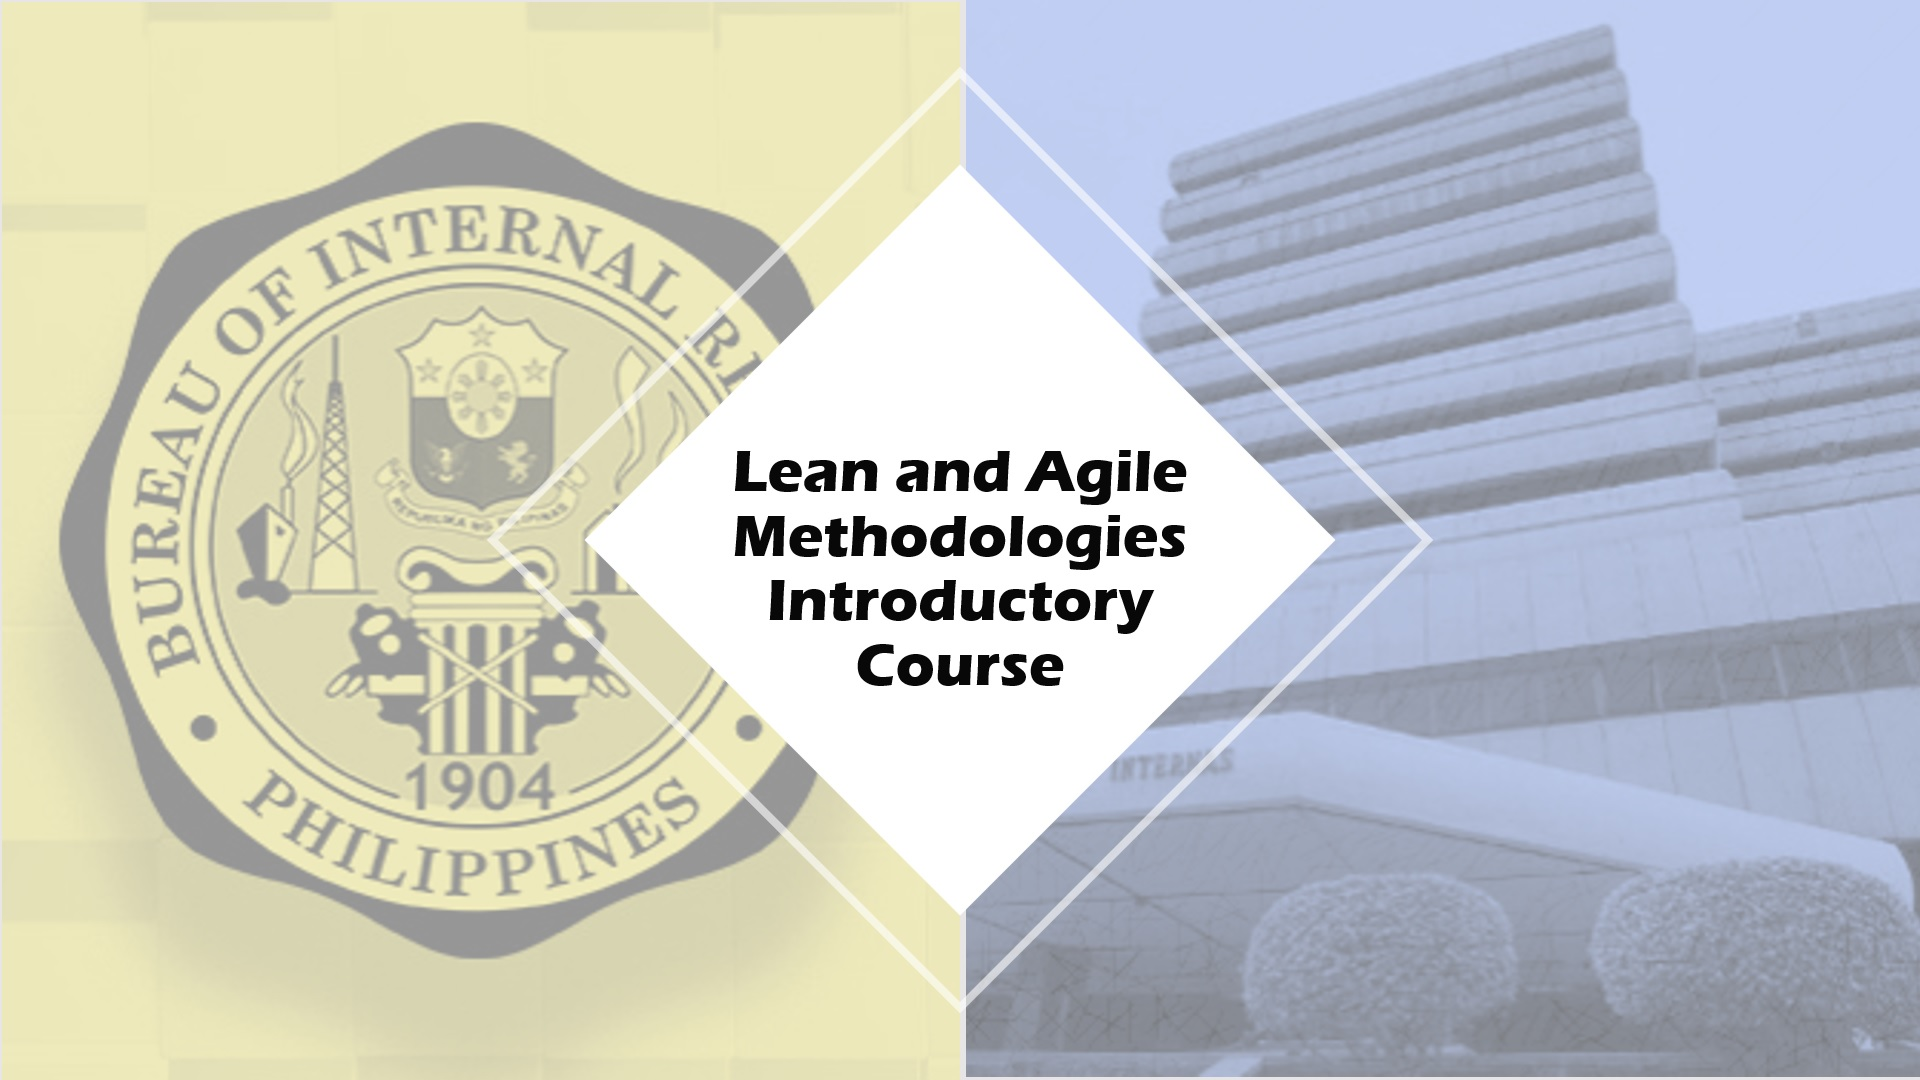 Lean and Agile Methodologies Introductory Course (Batch 3)